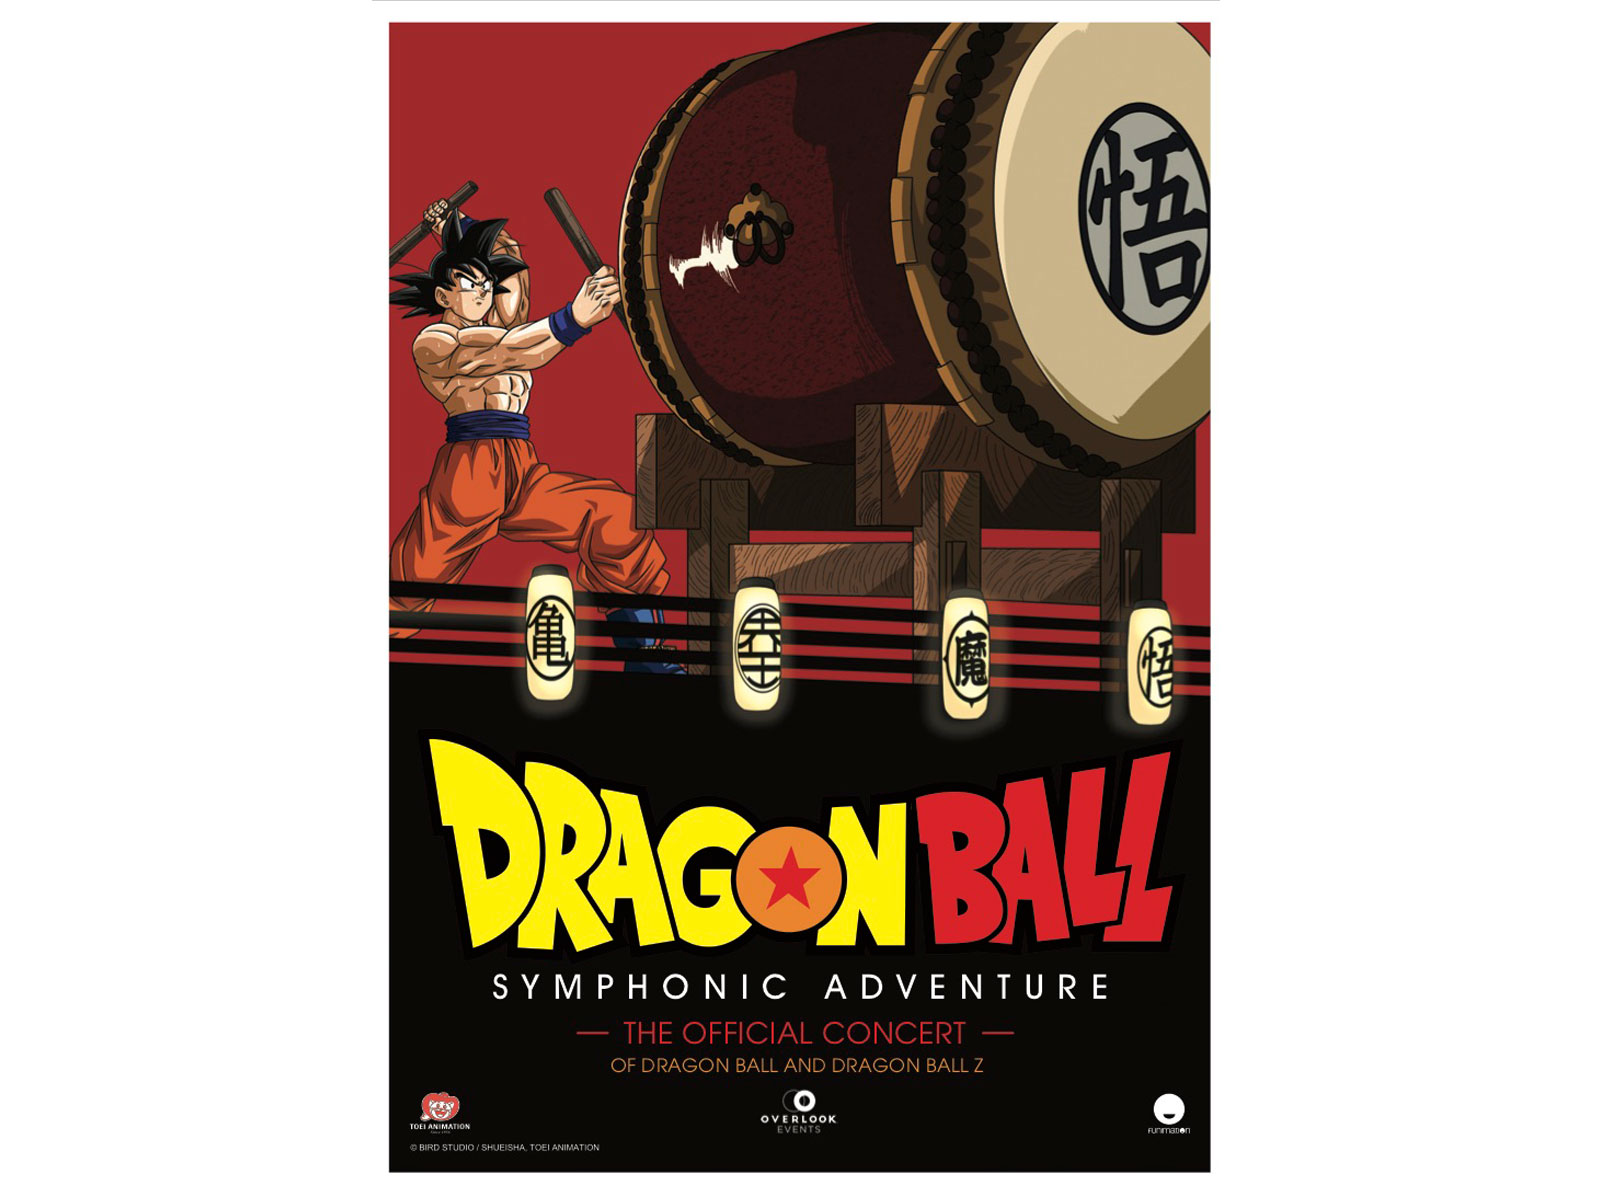 THE DRAGON BALL SYMPHONIC ADVENTURE COMES TO THE UNITED STATES IN 2020 WITH A PREMIERE PERFORMANCE IN CHICAGO!